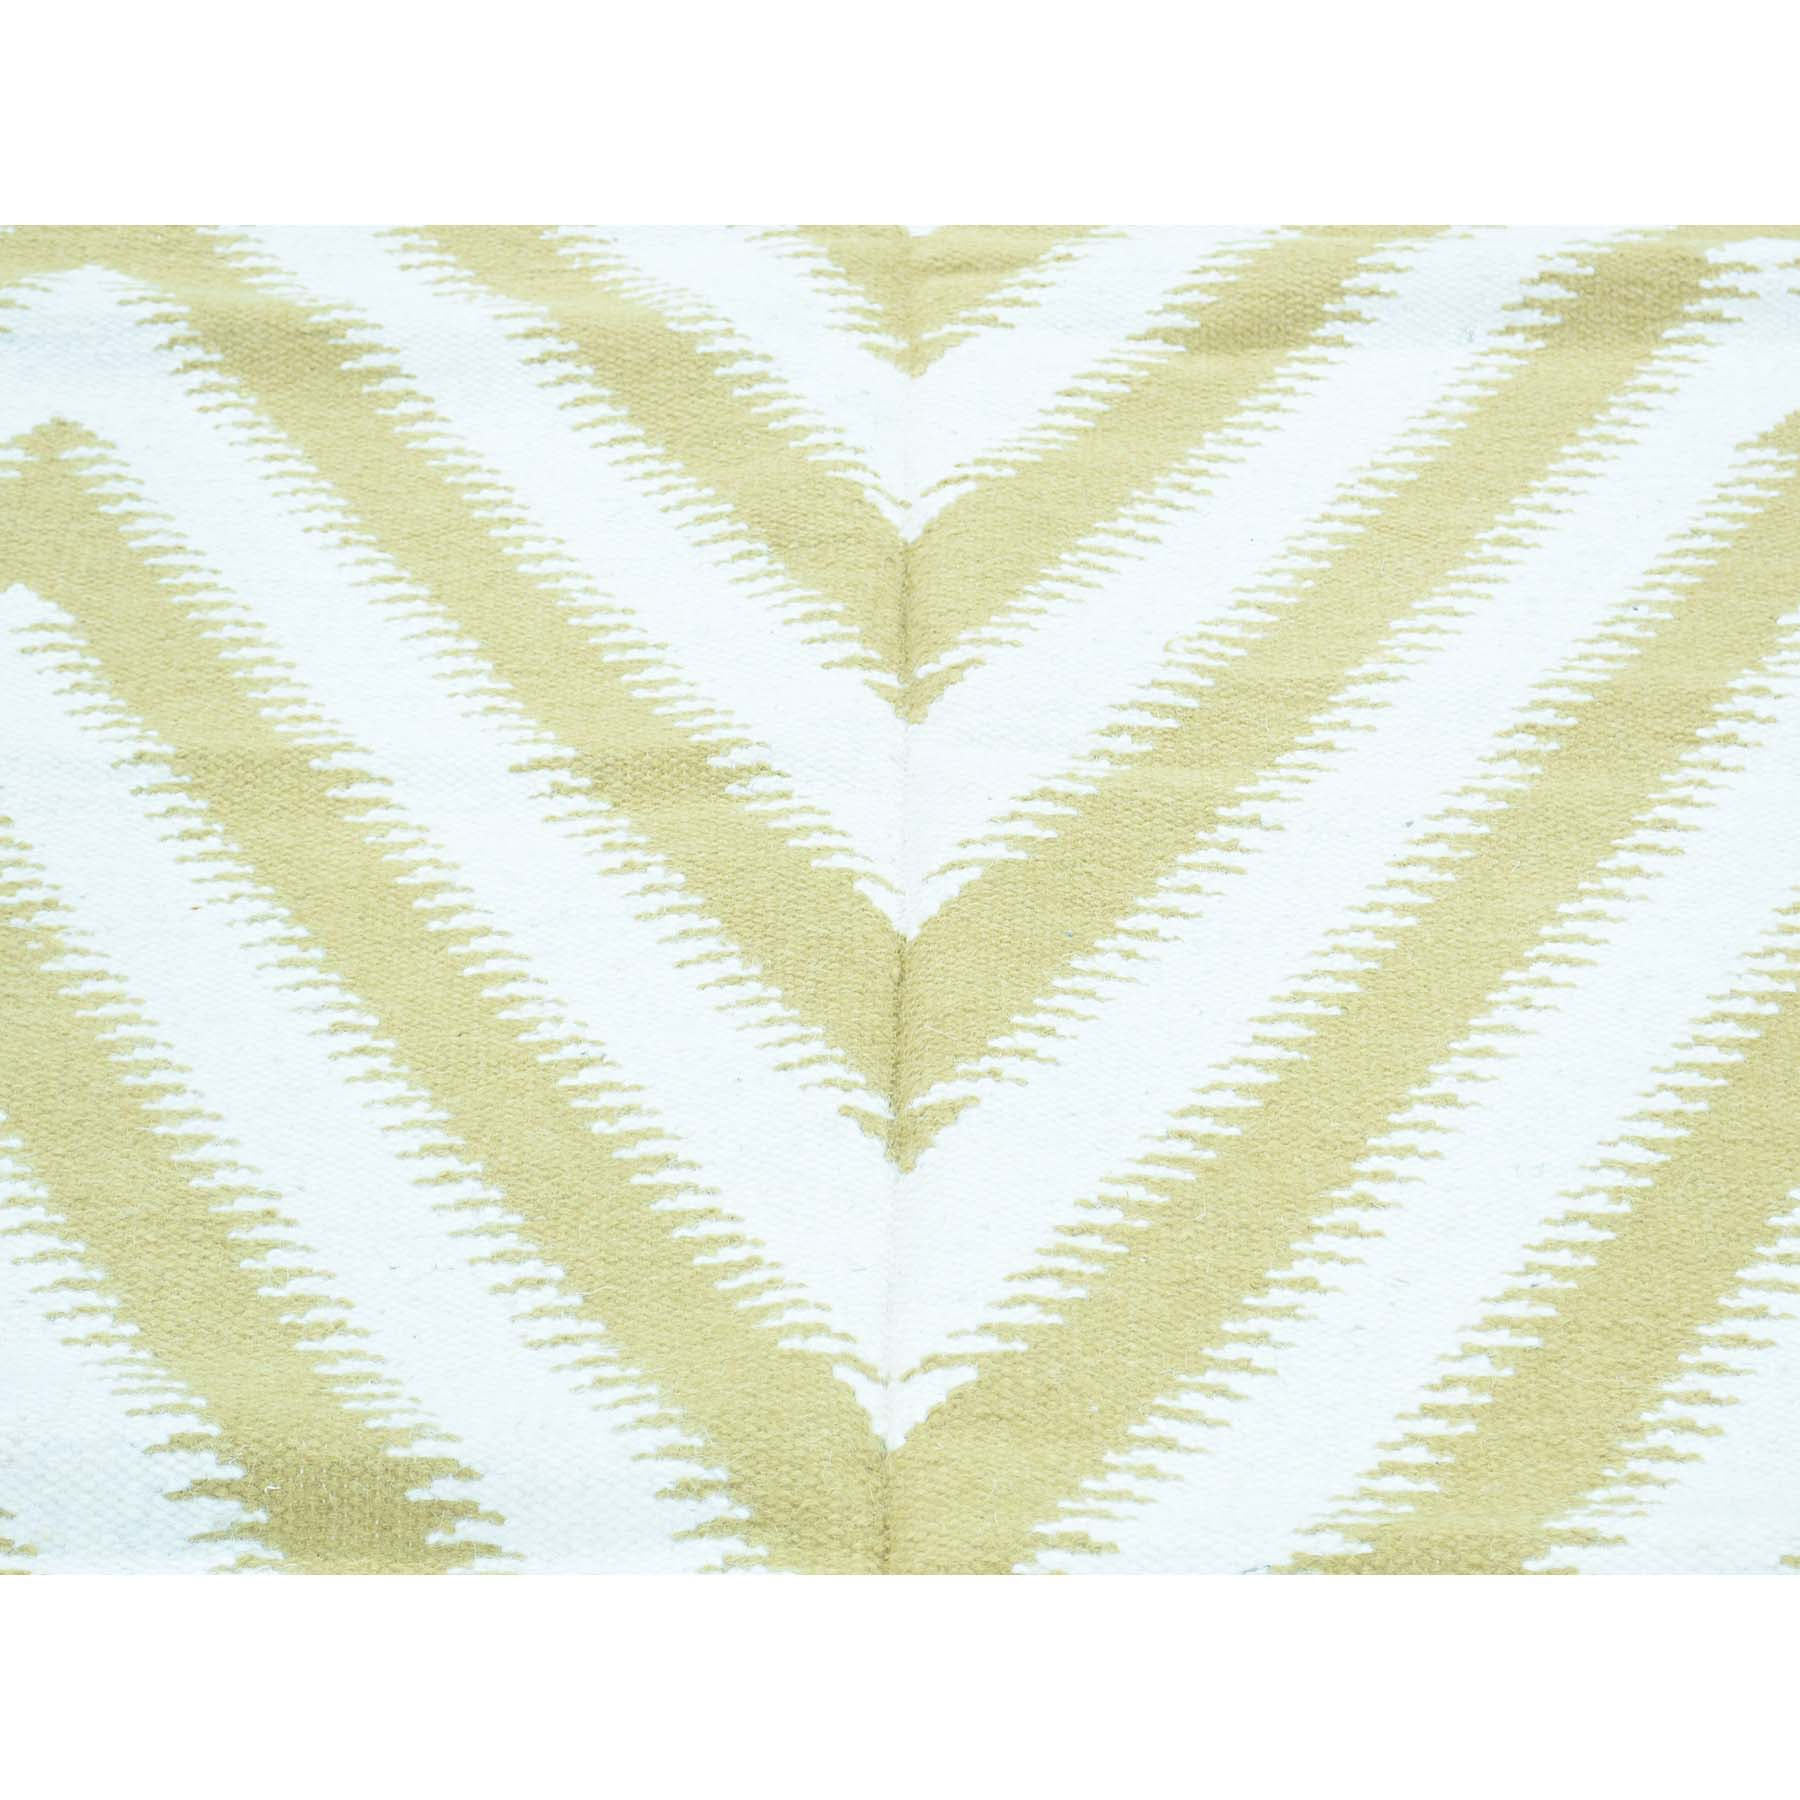 "Handmade Flat Weave Rectangle Rug > Design# SH31935 > Size: 5'-0"" x 8'-0"" [ONLINE ONLY]"